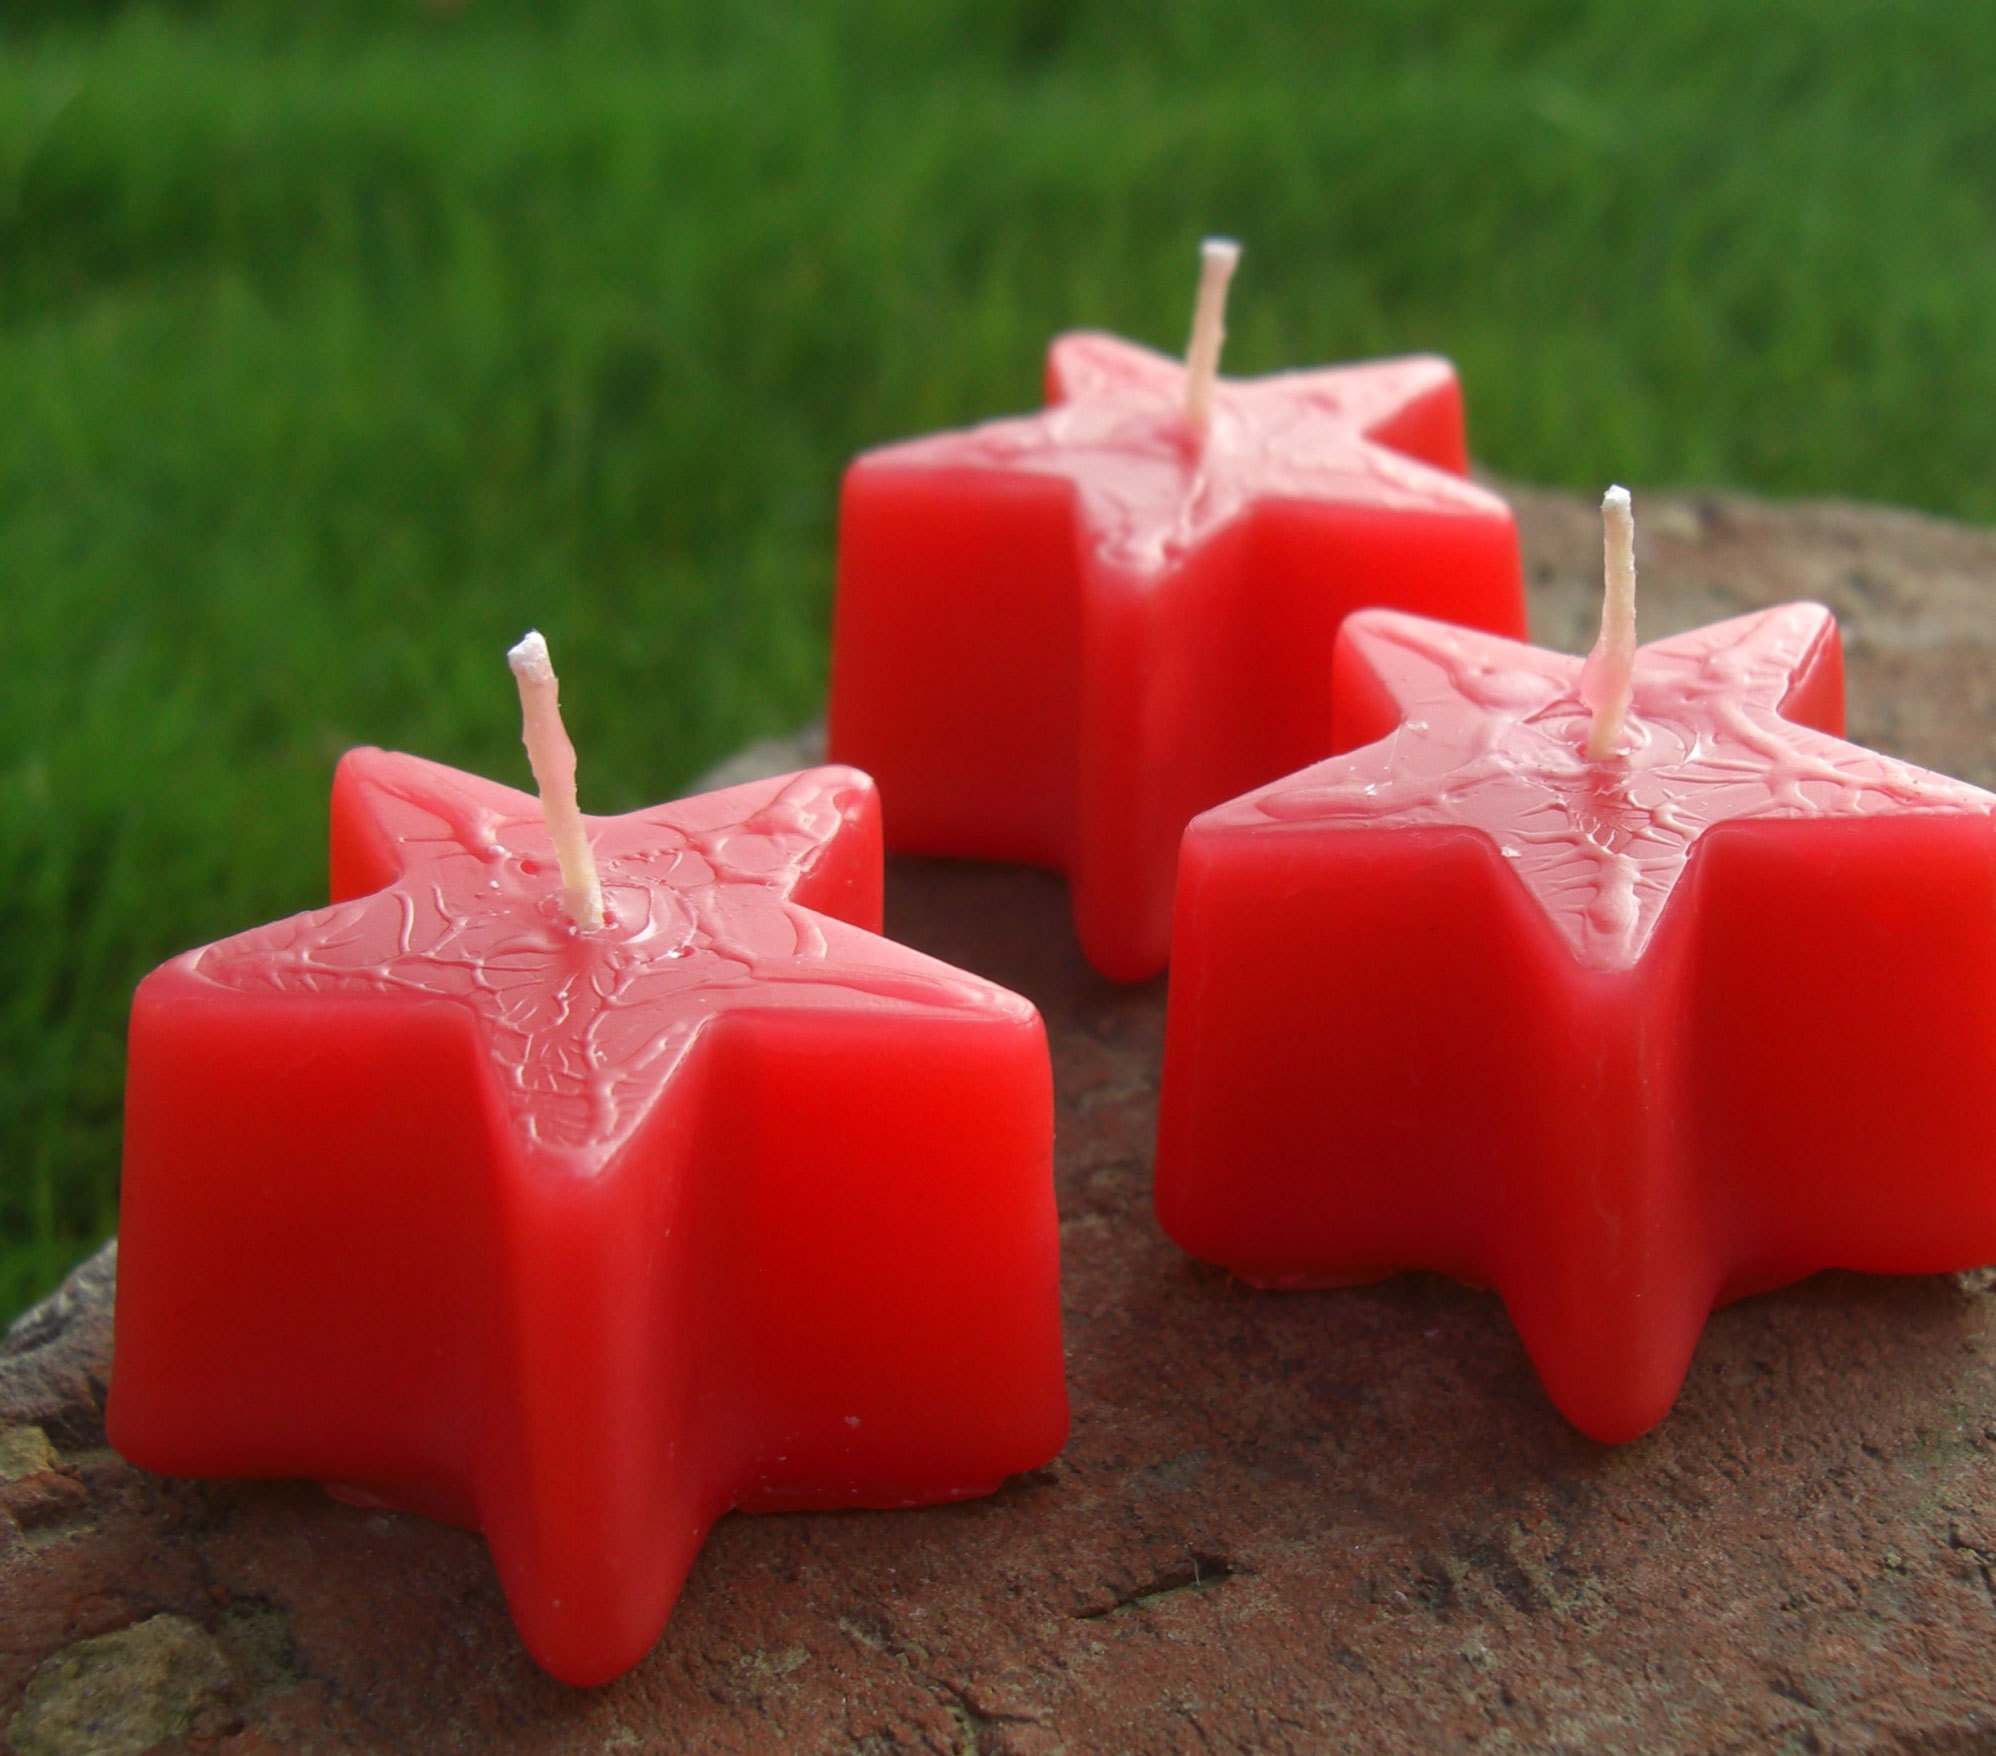 Favors & Gifts, red, Favors, Wedding, Custom, Favorite, Ribbons, Stars, Frosted, Netting, Scented, Matte, Kokocandles, Cello